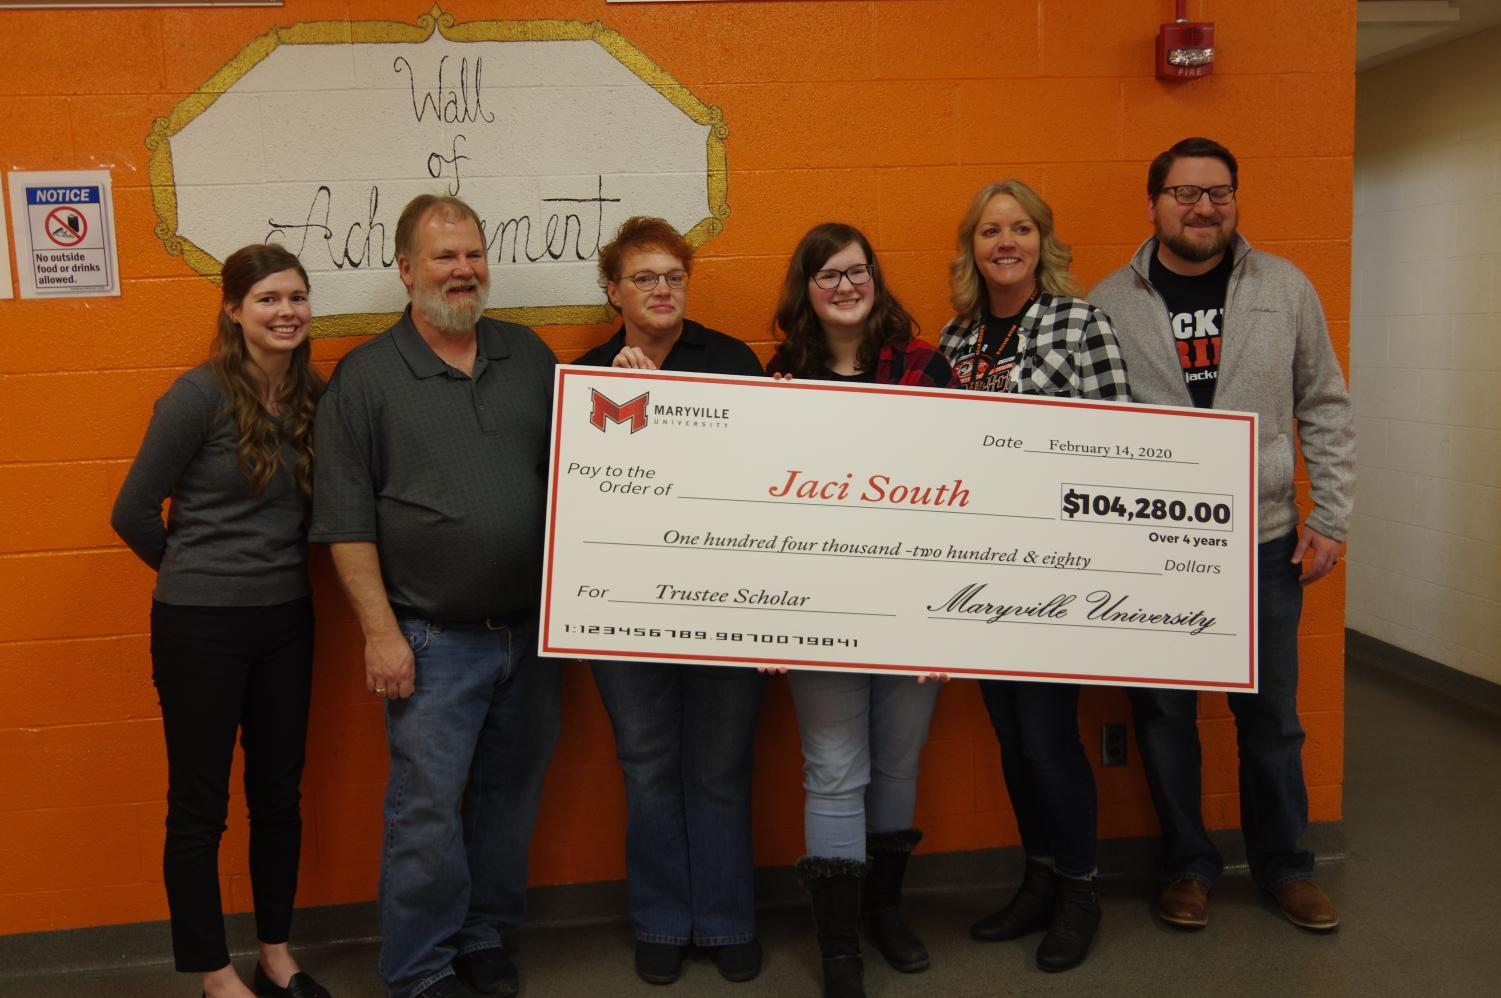 Maryville admission counselor poses for photo with check, along with Jerry, Jana, and Jaci South, Mrs. Meyer, and Mr. Guebert